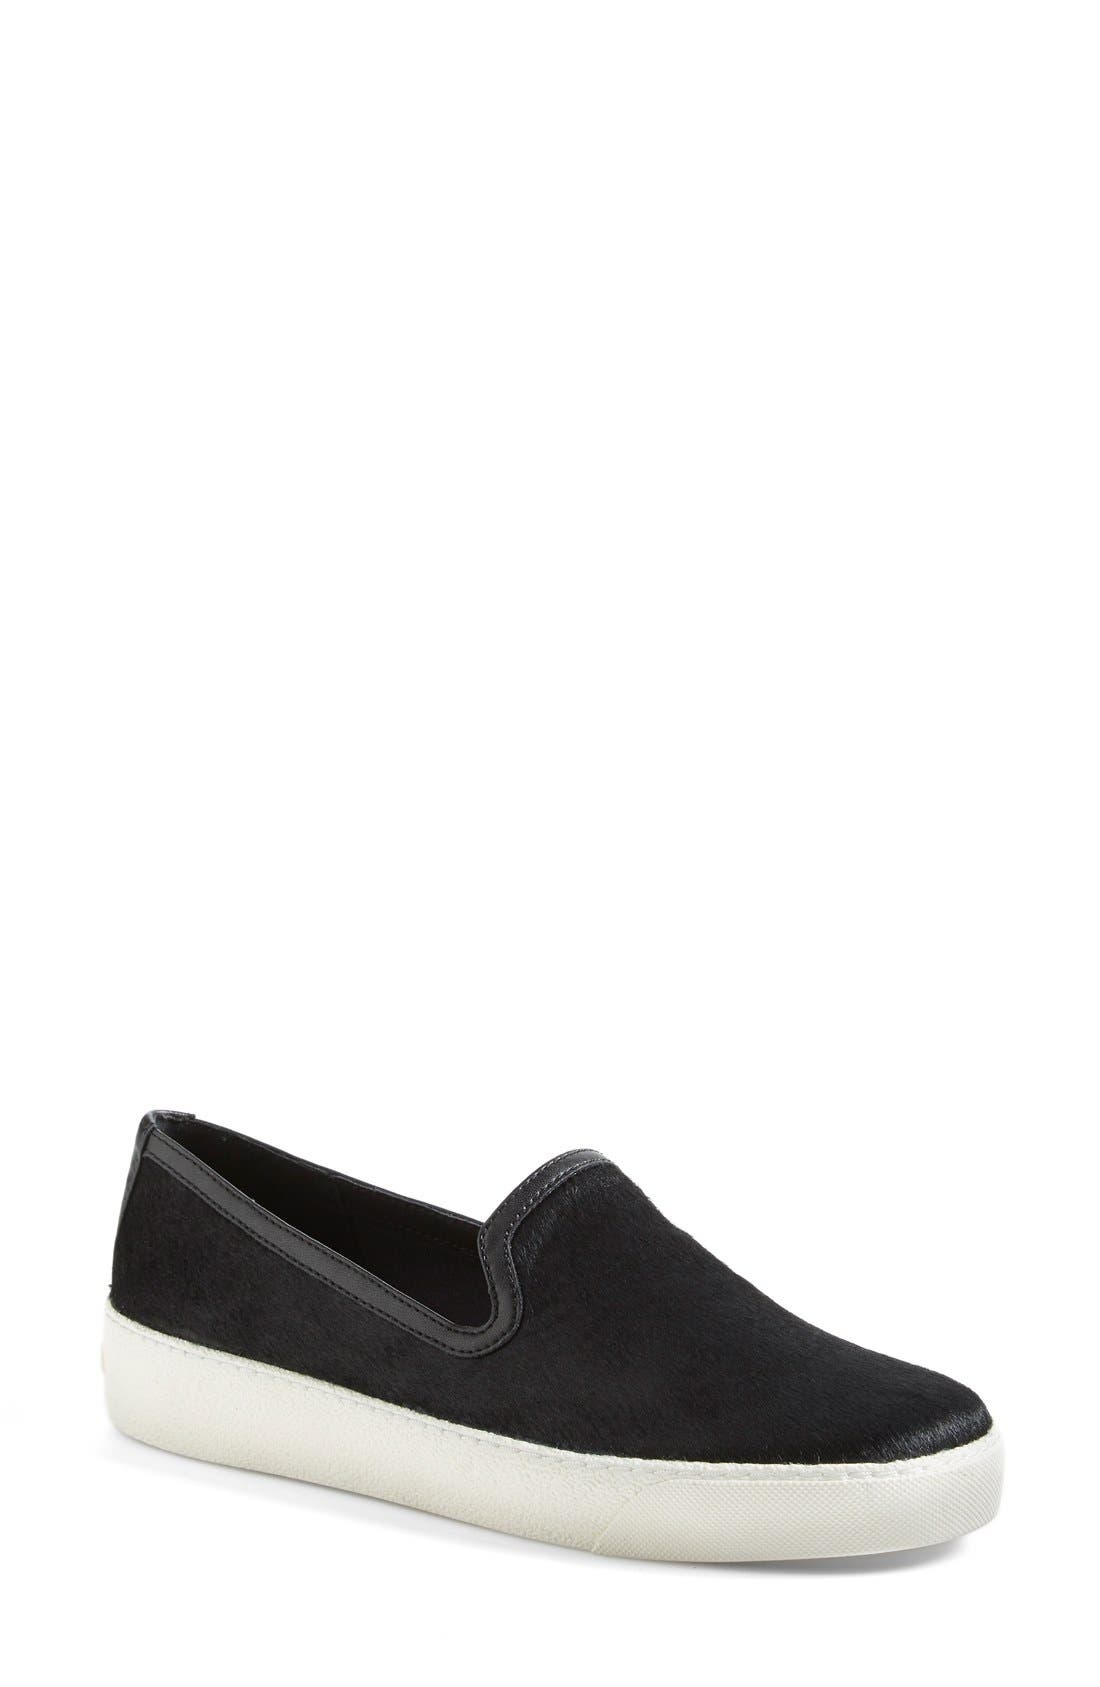 Alternate Image 1 Selected - Sam Edelman 'Becker' Calf Hair Slip On